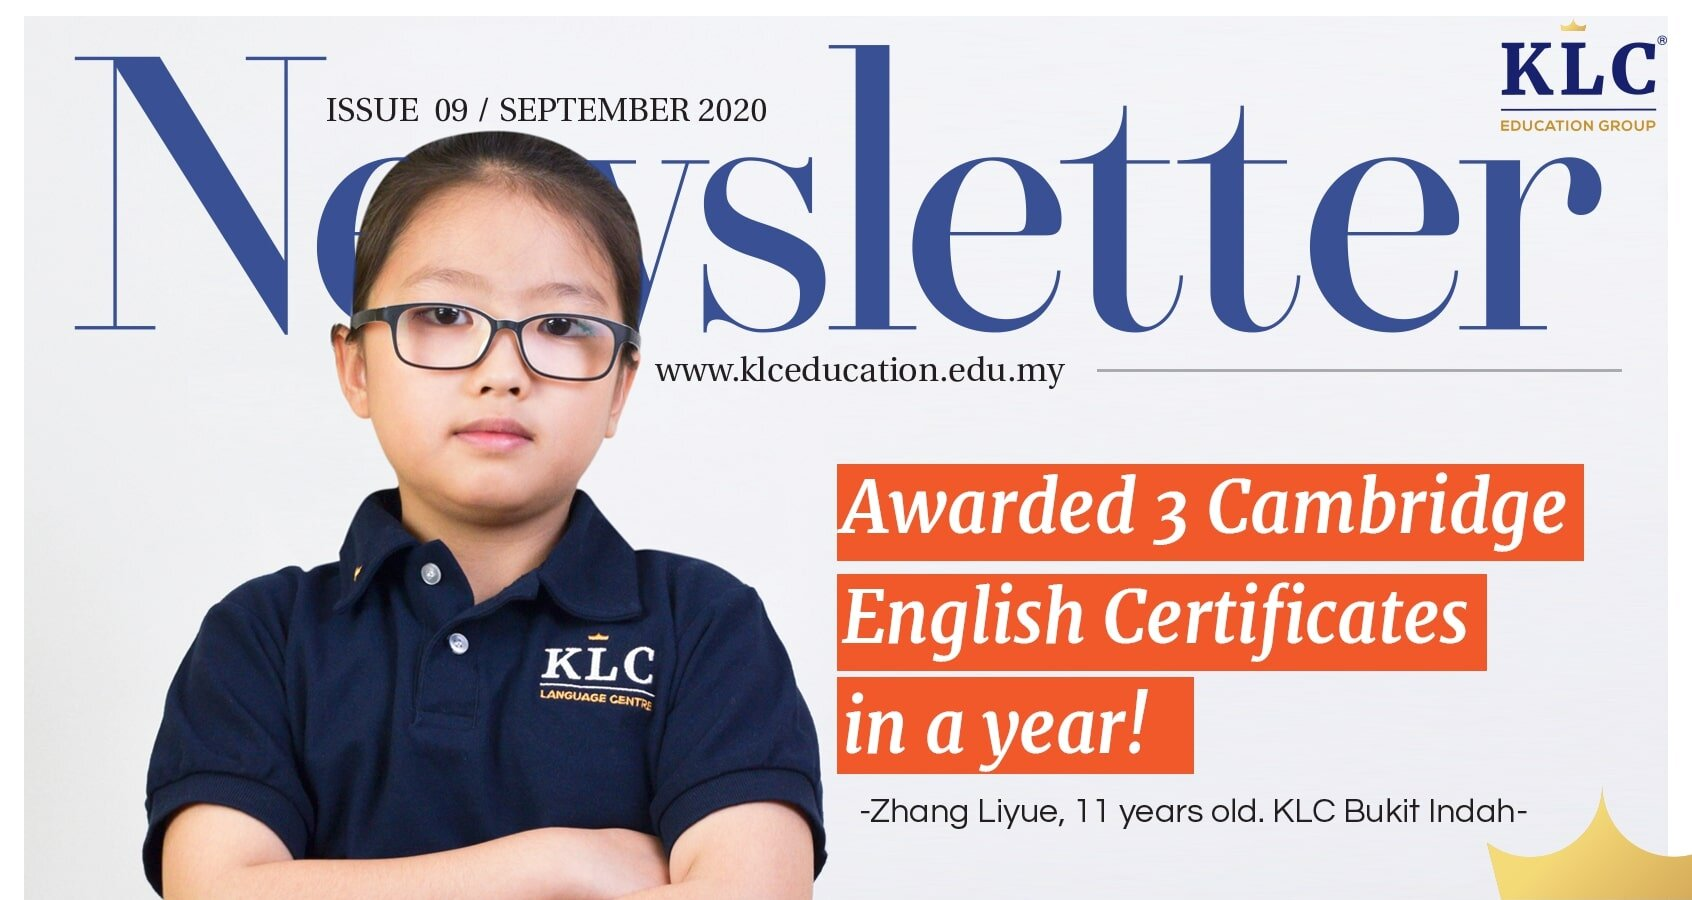 KLC Newsletter September 2020